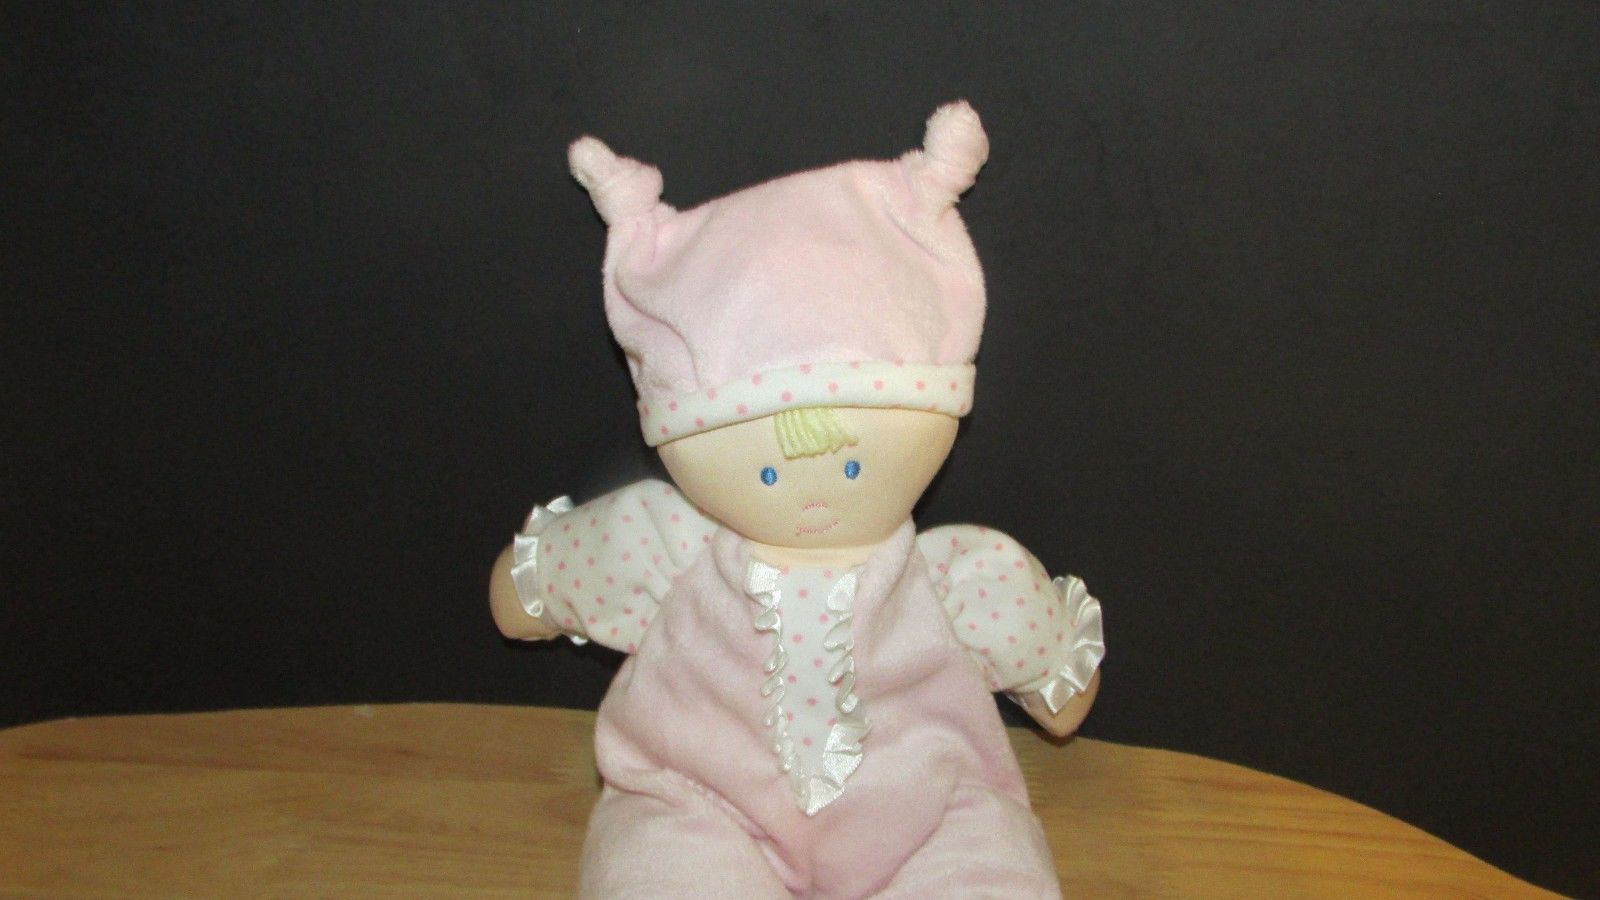 Kids Preferred doll baby soft plush pink knotted hat polka dots satin ruffle image 3